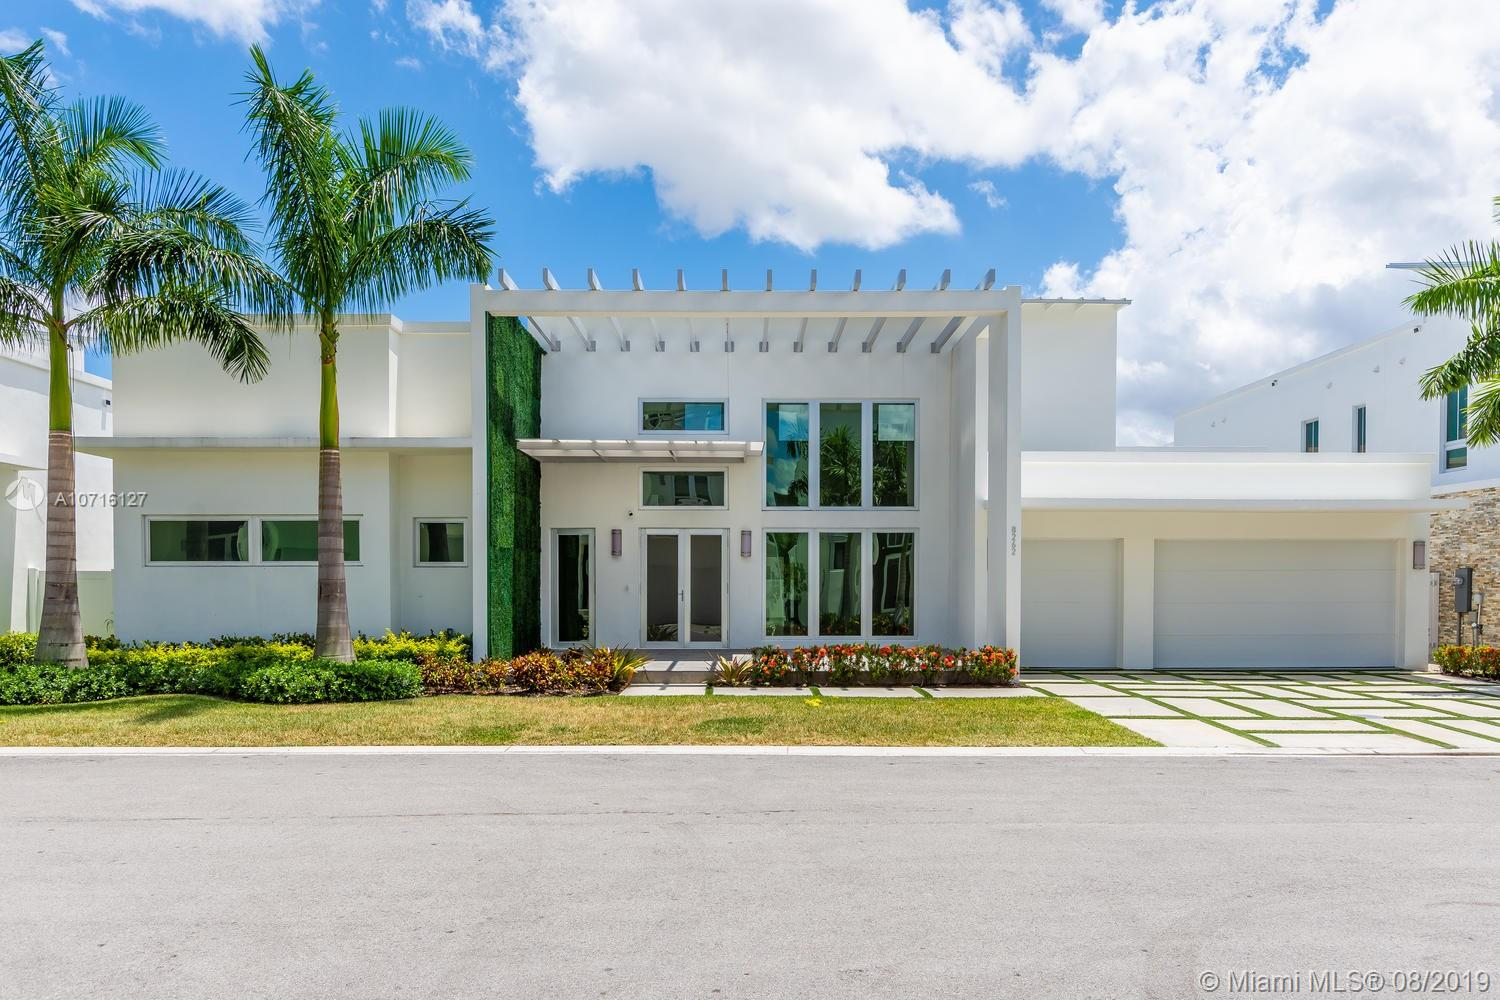 8262 NW 34th st, Doral, Florida